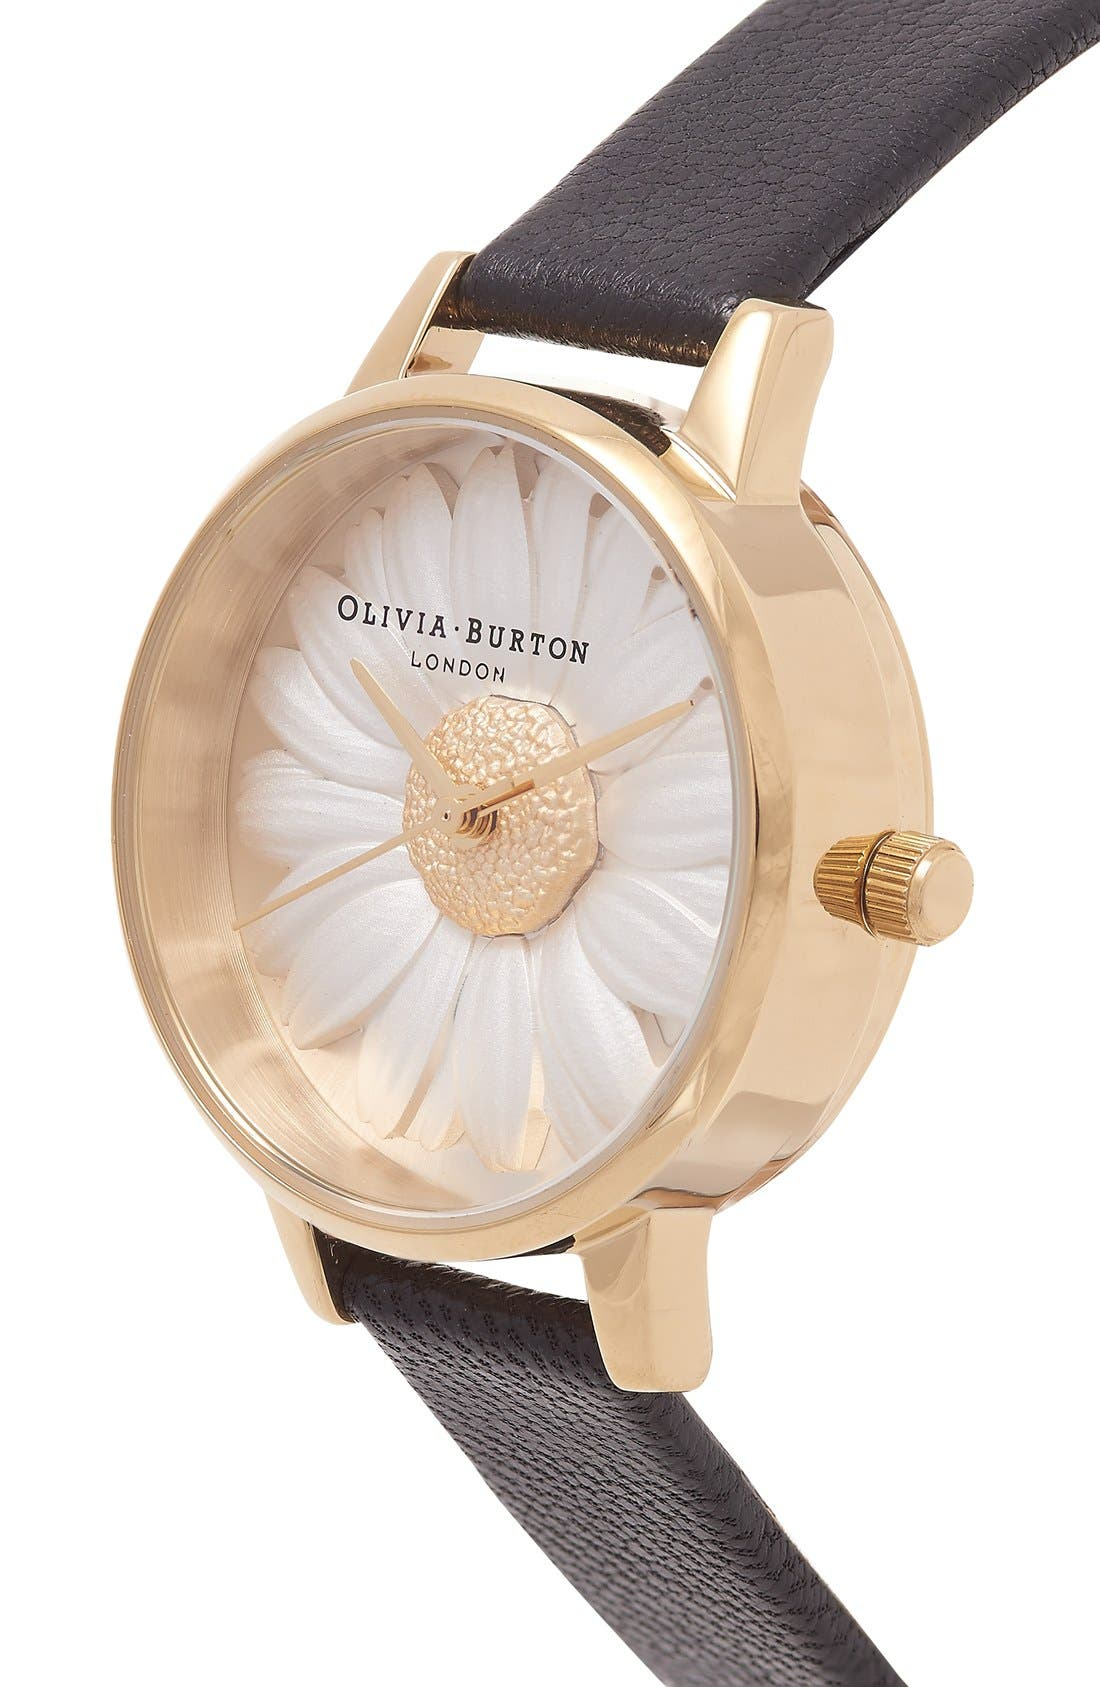 OLIVIA BURTON, 3D Daisy Leather Strap Watch, 30mm, Alternate thumbnail 8, color, 001